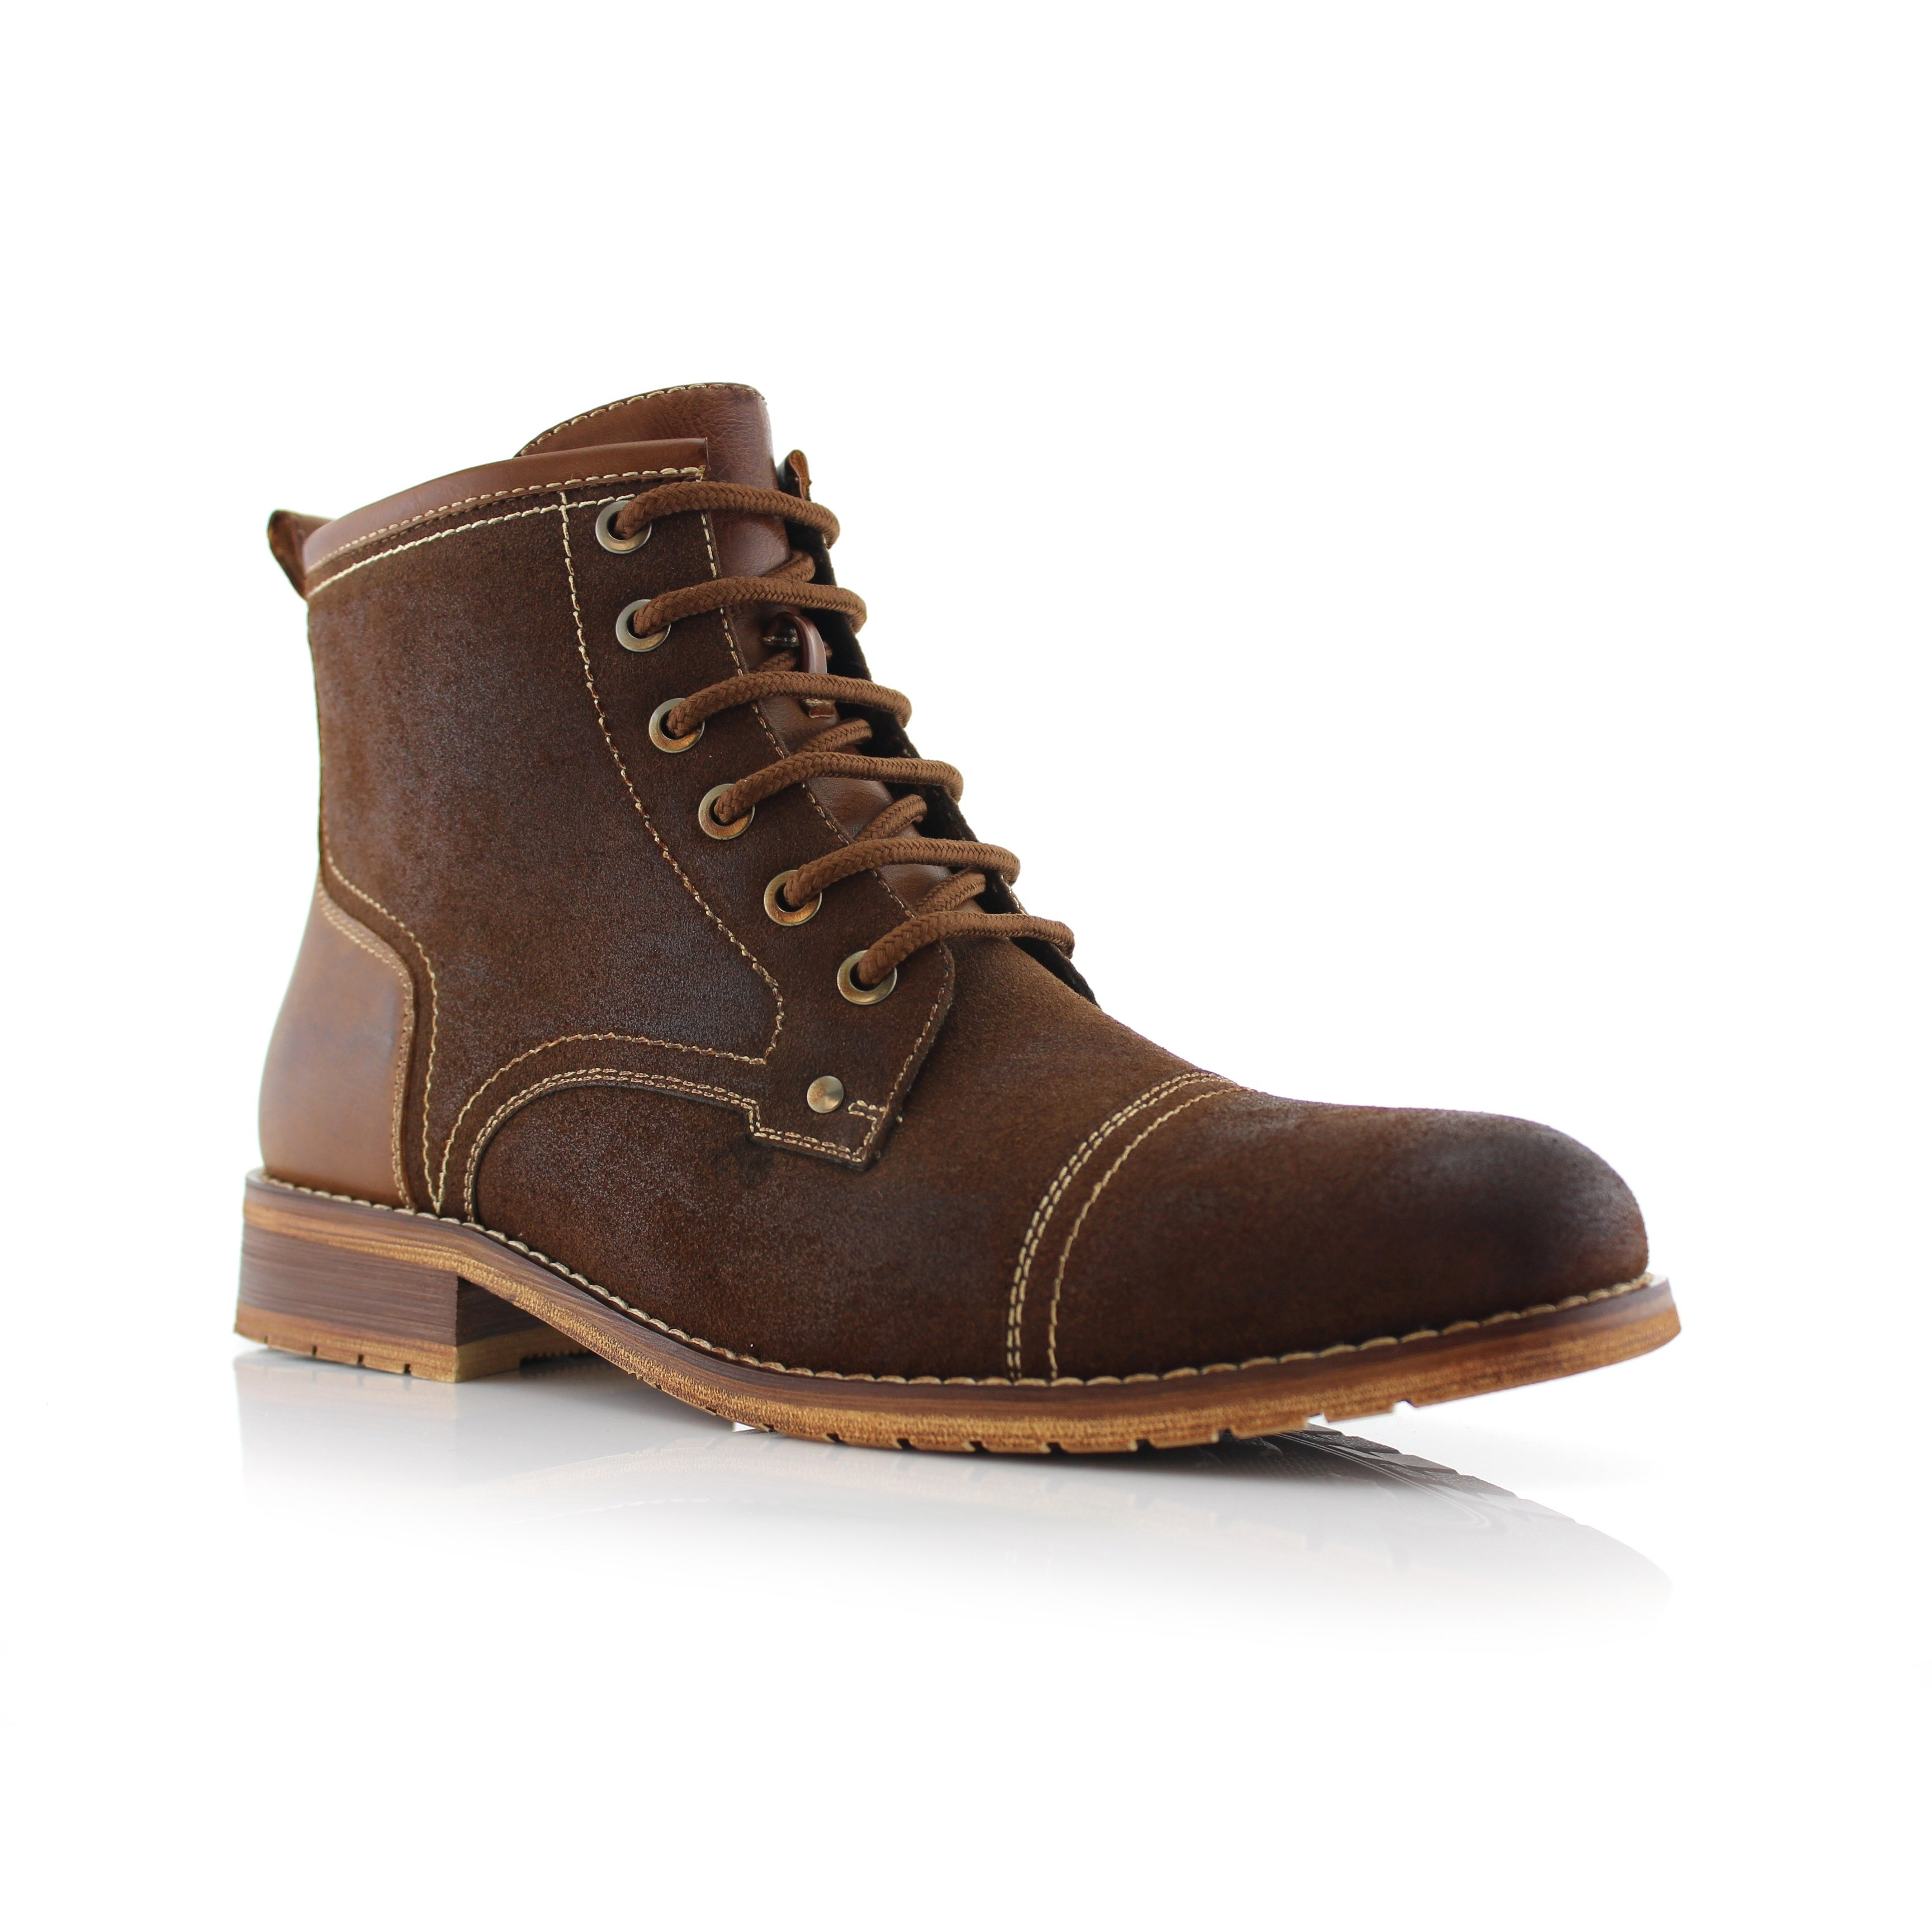 Ankle Boots For Work or Casual Wear